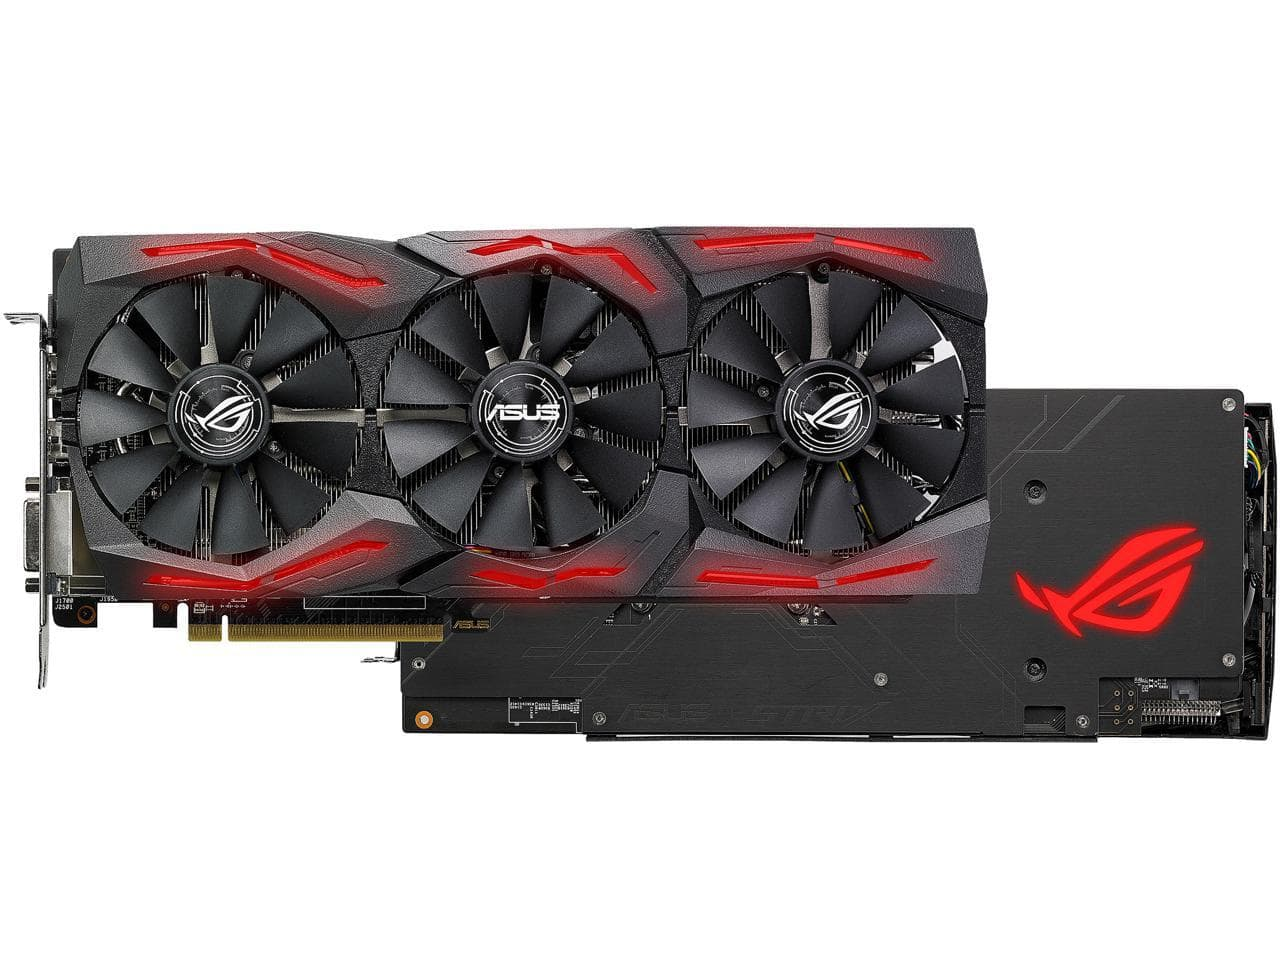 ASUS ROG Strix Radeon RX 580 8GB Video Card + PCDD Game + 3-Mo. Xbox Game Pass